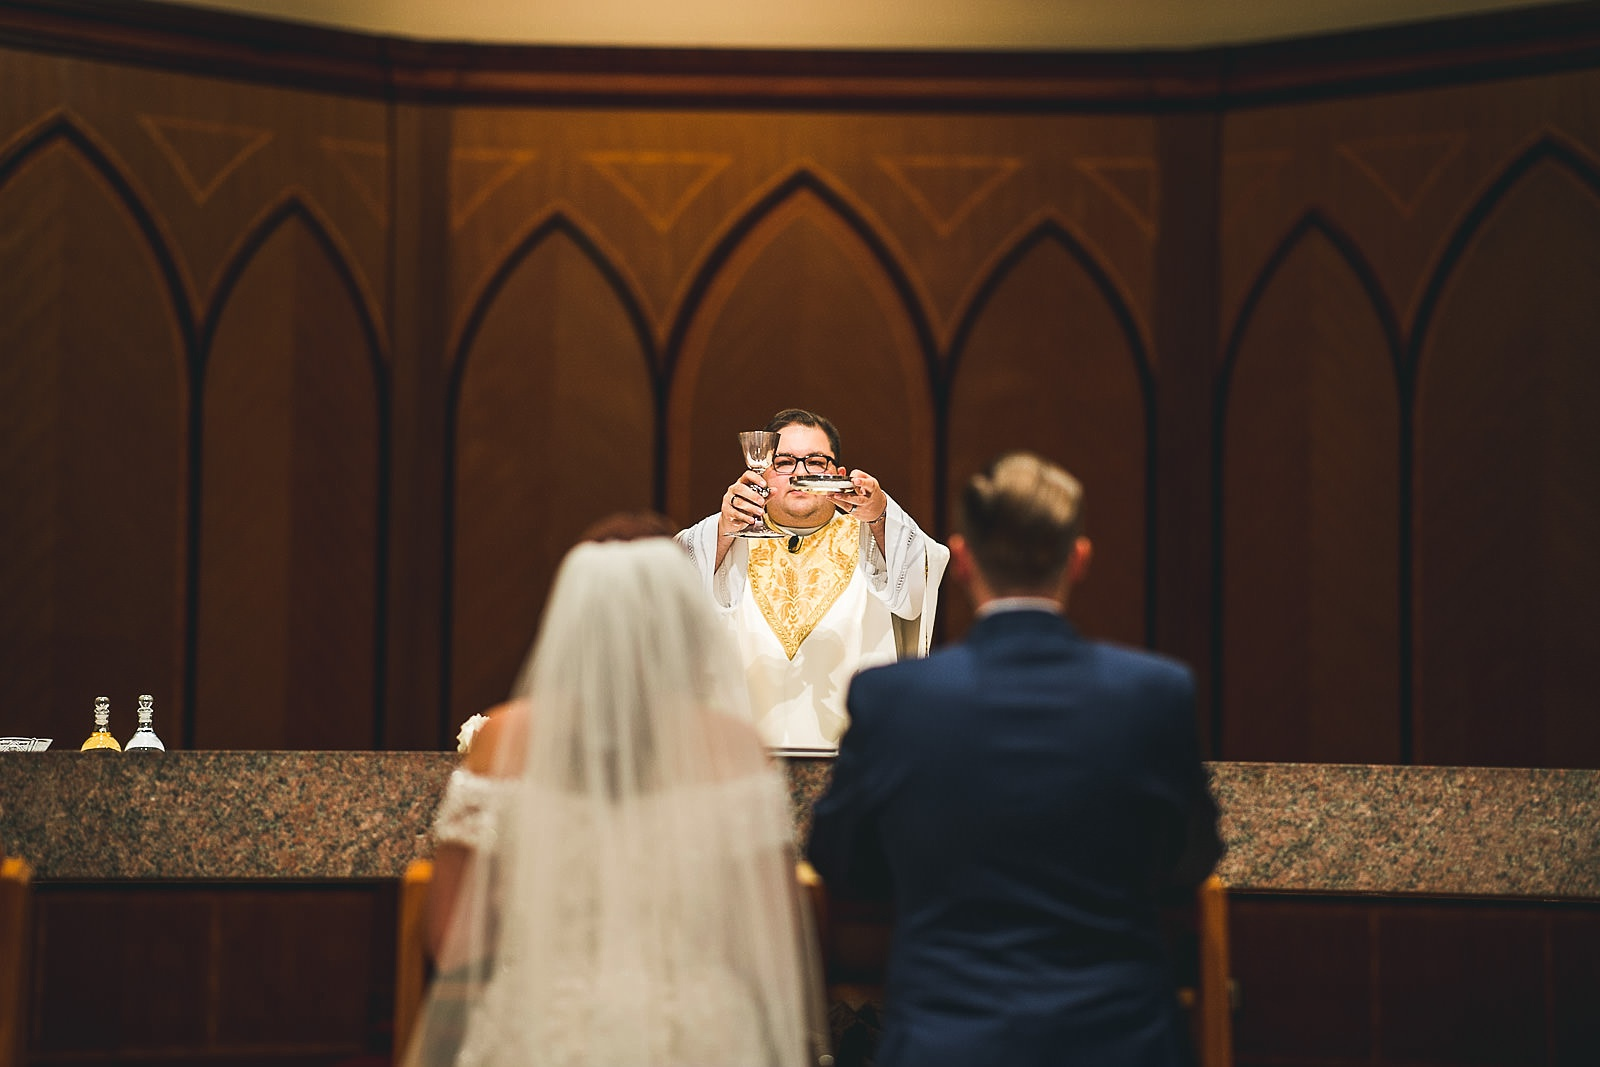 37 church blessing - Hilton Chicago Wedding Photographer // Sarah + Aaron